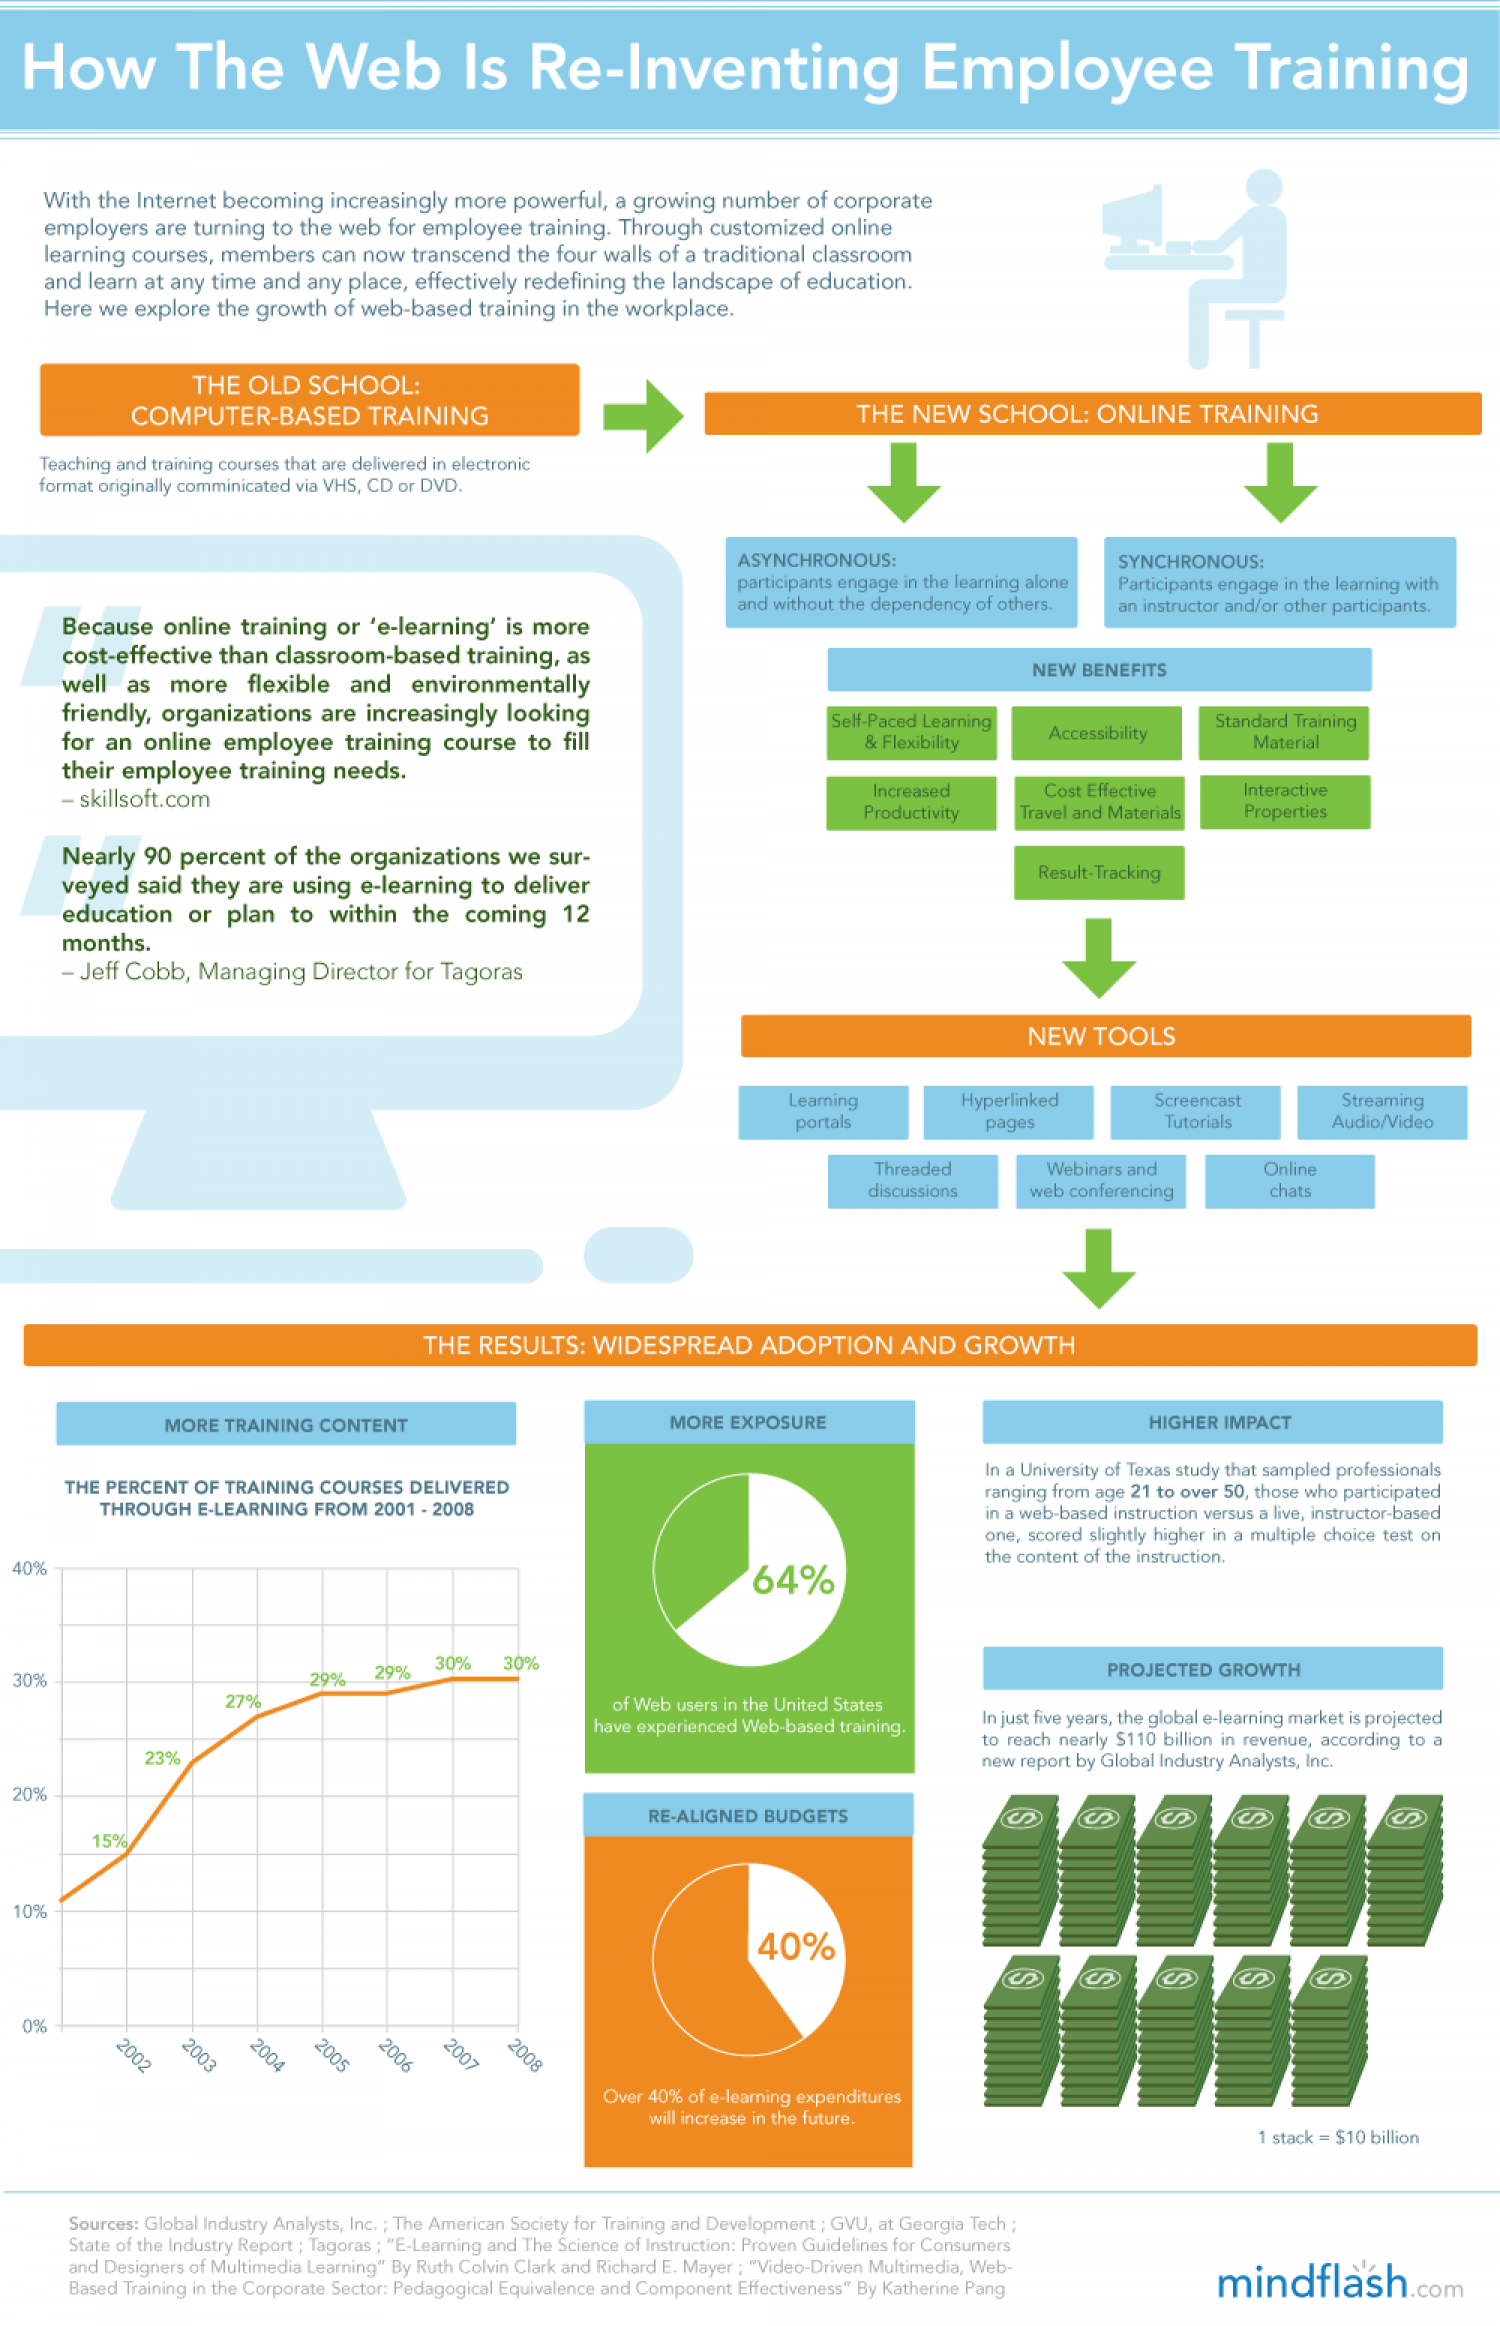 How the Web Is Re-Inventing Employee Training Infographic